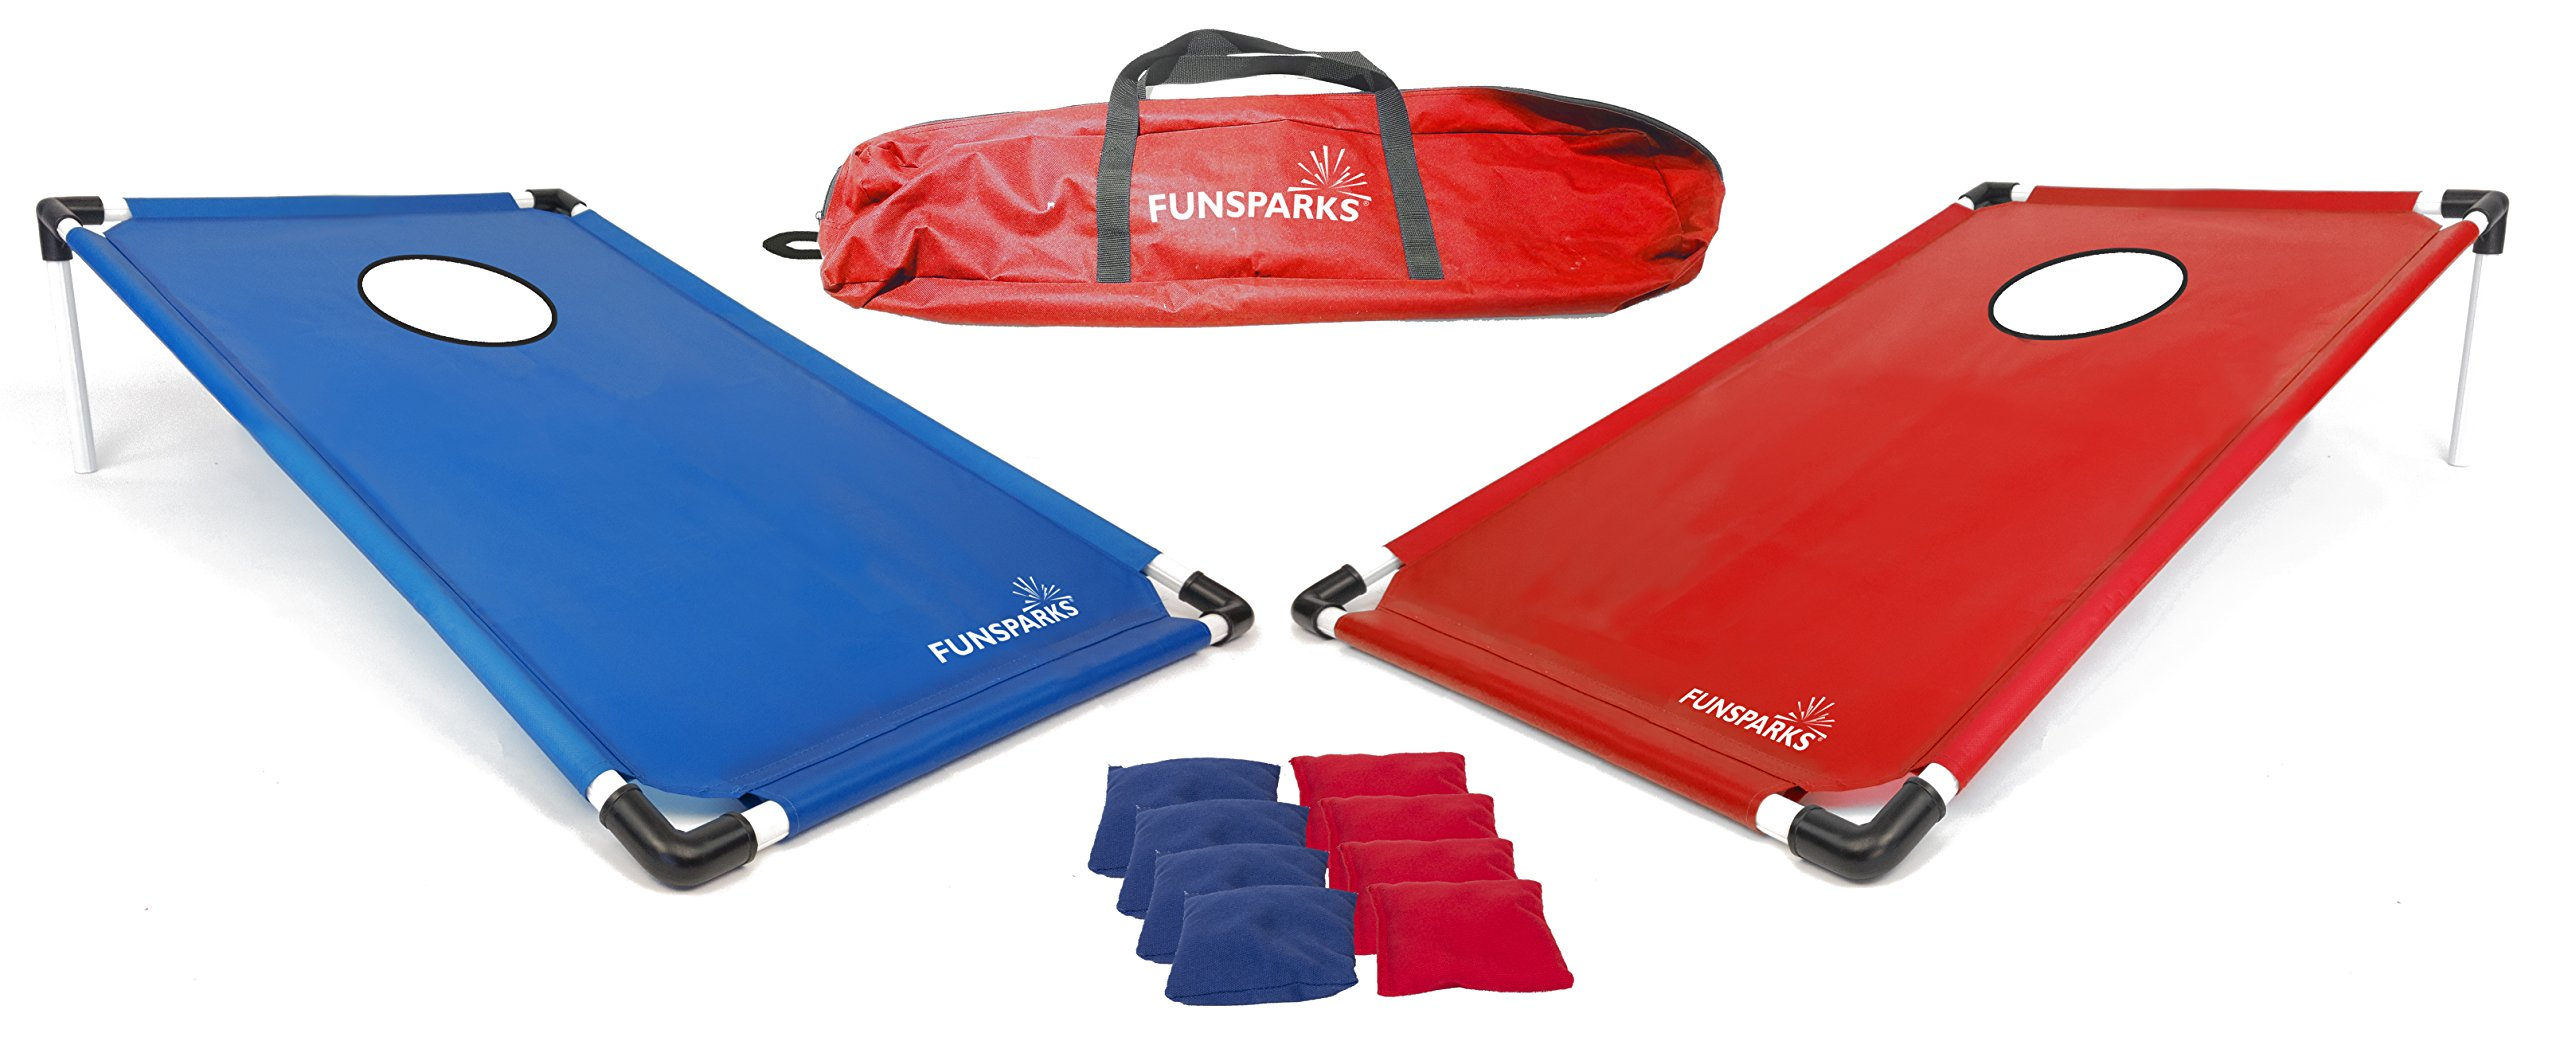 Funsparks Portable Cornhole Game Set with 8 Bean Bags and a nice Travel Bag by Funsparks